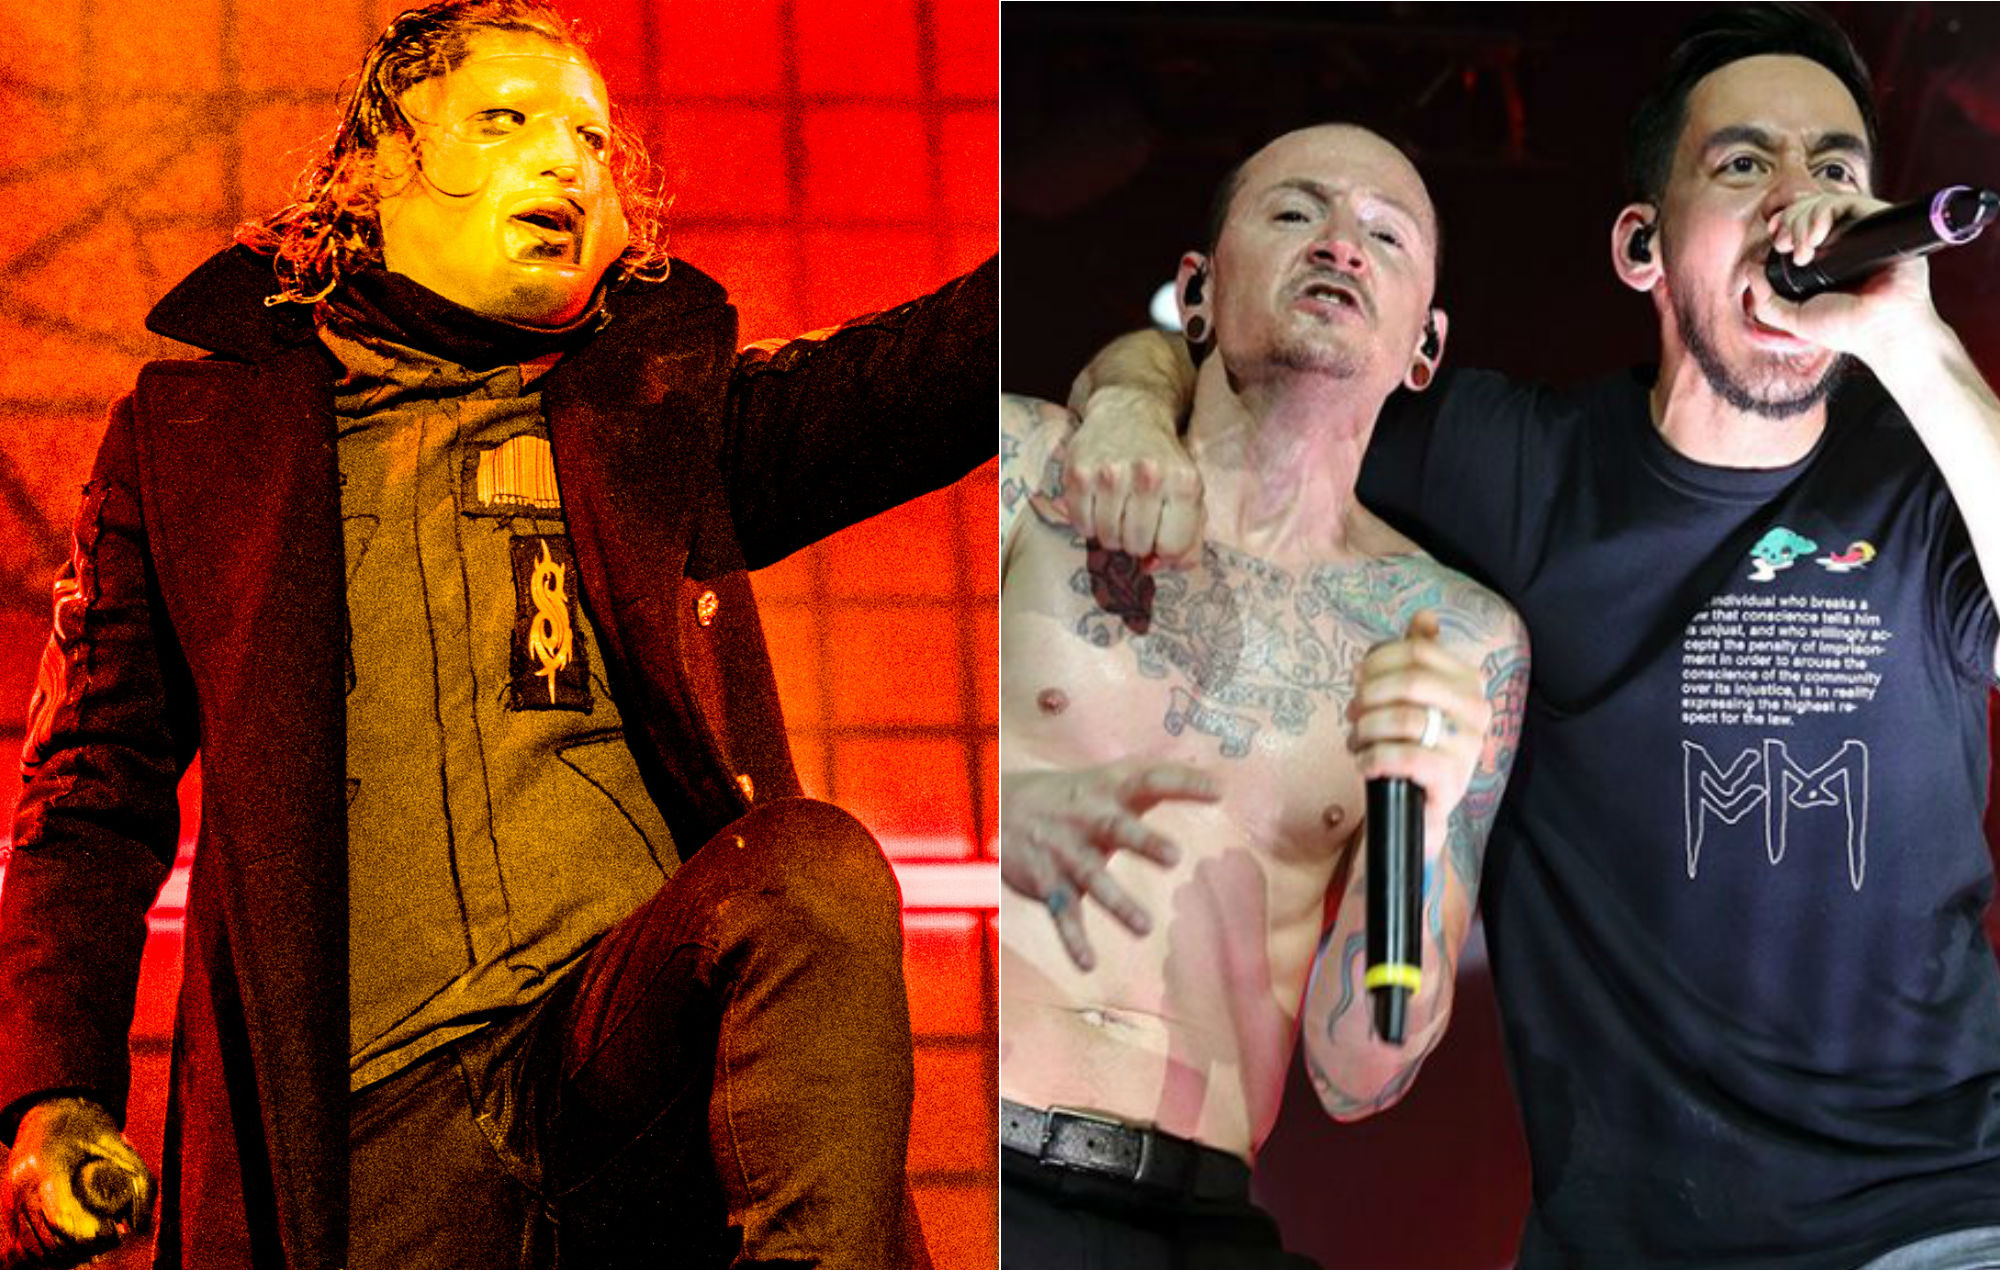 Here's Slipknot's 'Psychosocial' covered in the style of Linkin Park